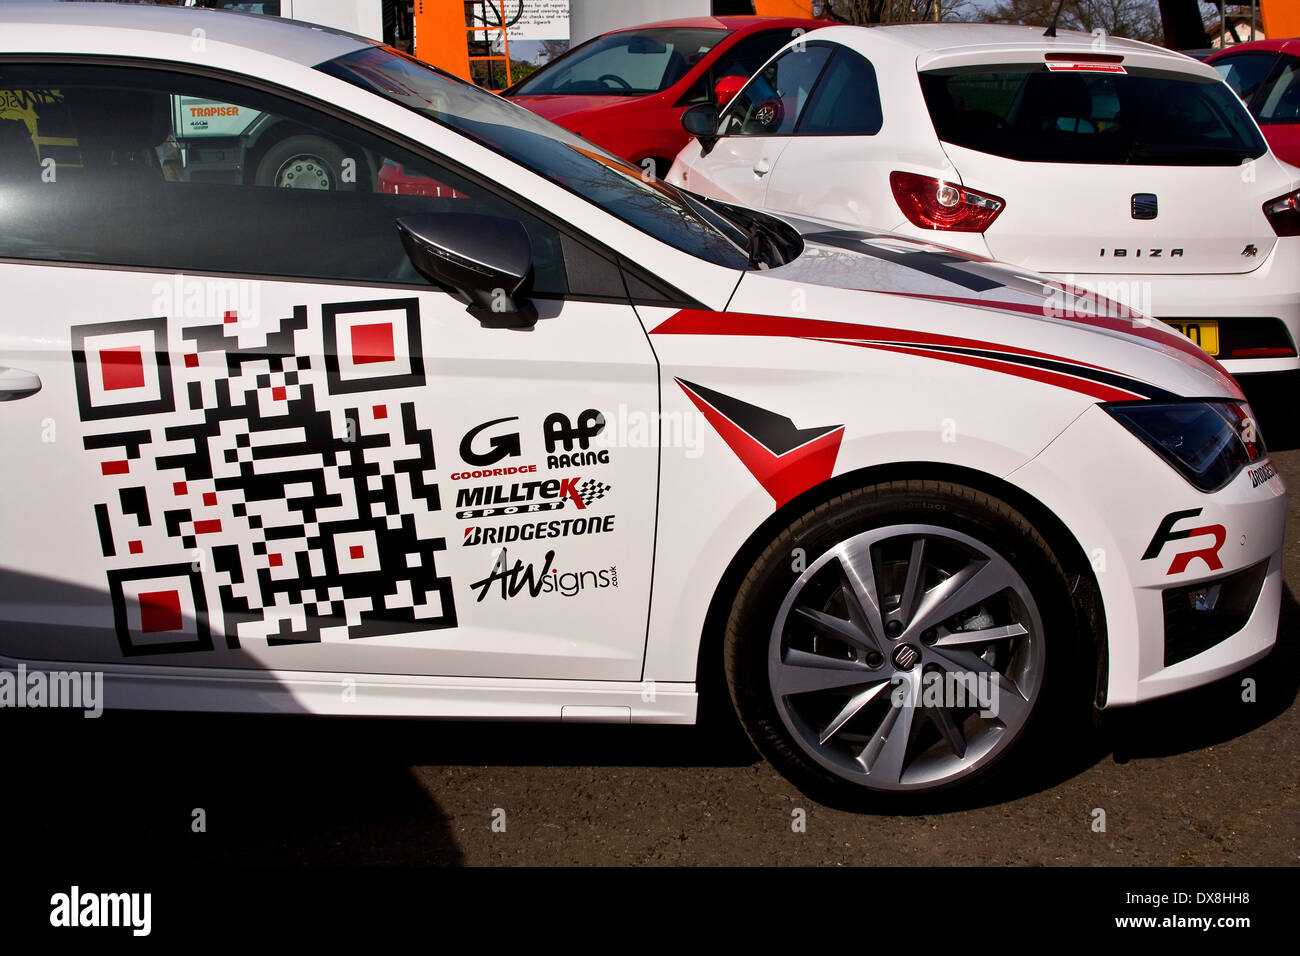 The New Seat Leon Sports Car With I Phone Application Stickers On